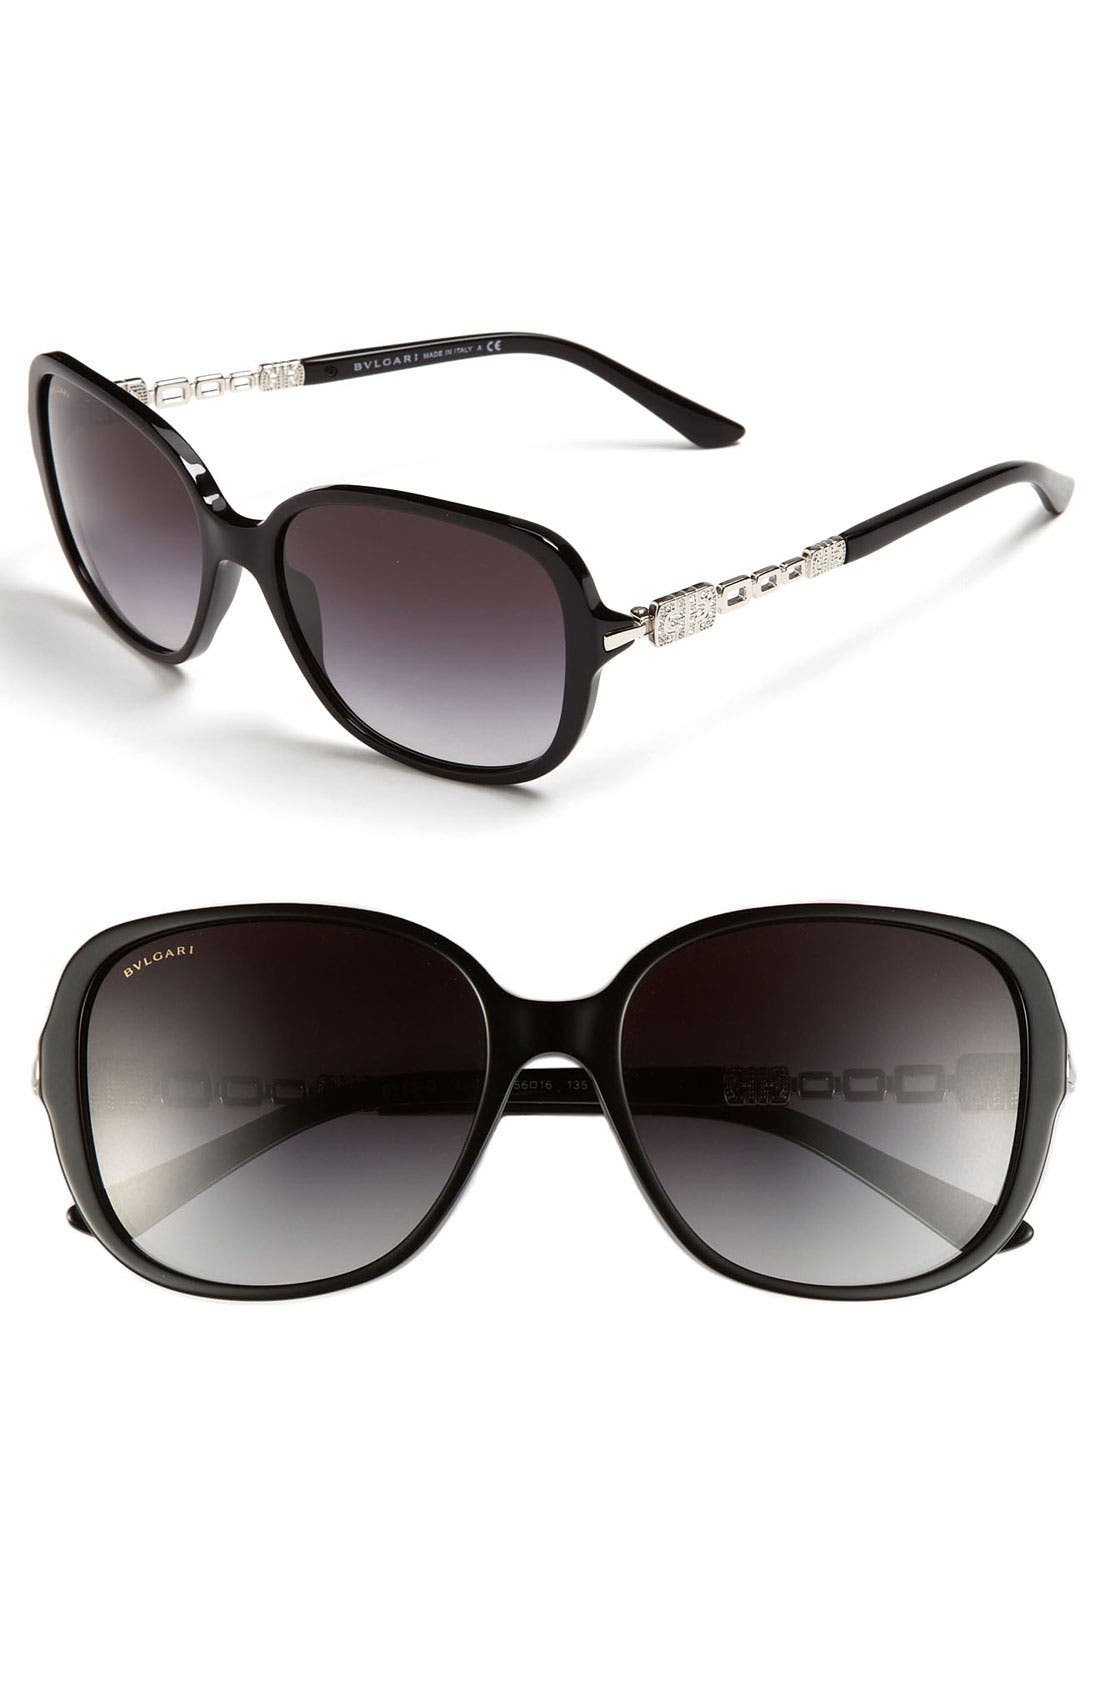 Alternate Image 1 Selected - BVLGARI 56mm Crystal Chain Temple Sunglasses